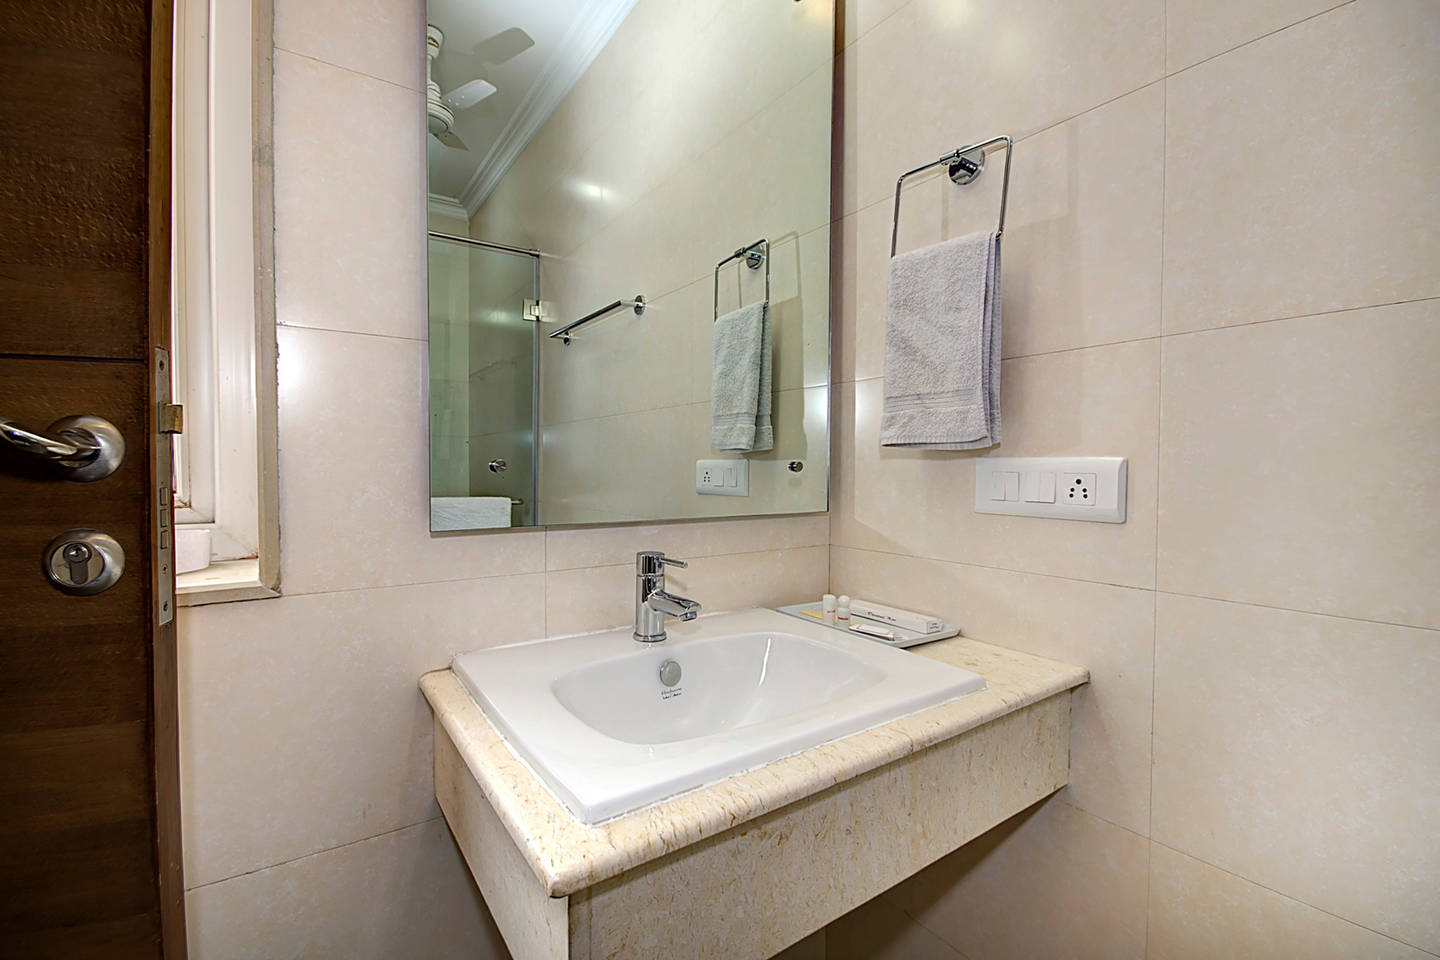 Apartment 1 BHK Serviced Apt in awarded BnB Property photo 18665610